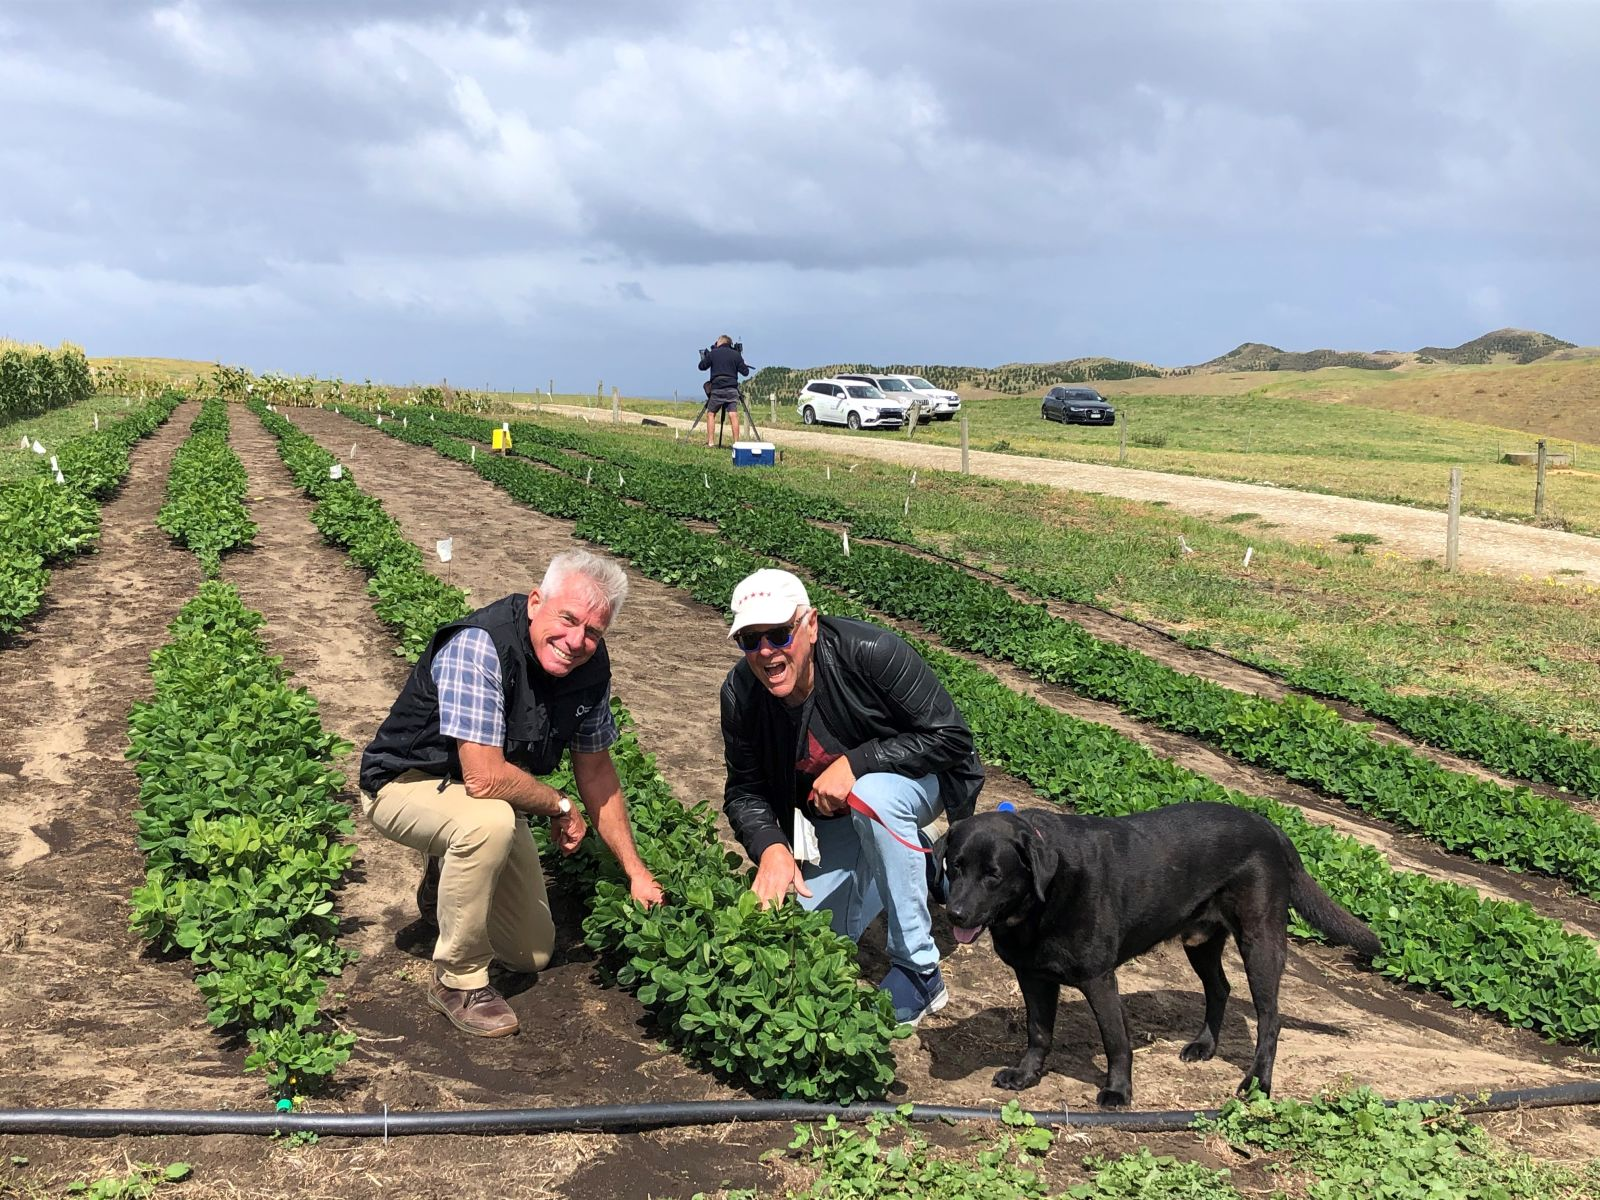 Pic's Peanut Butter to trial growing peanuts in Northland